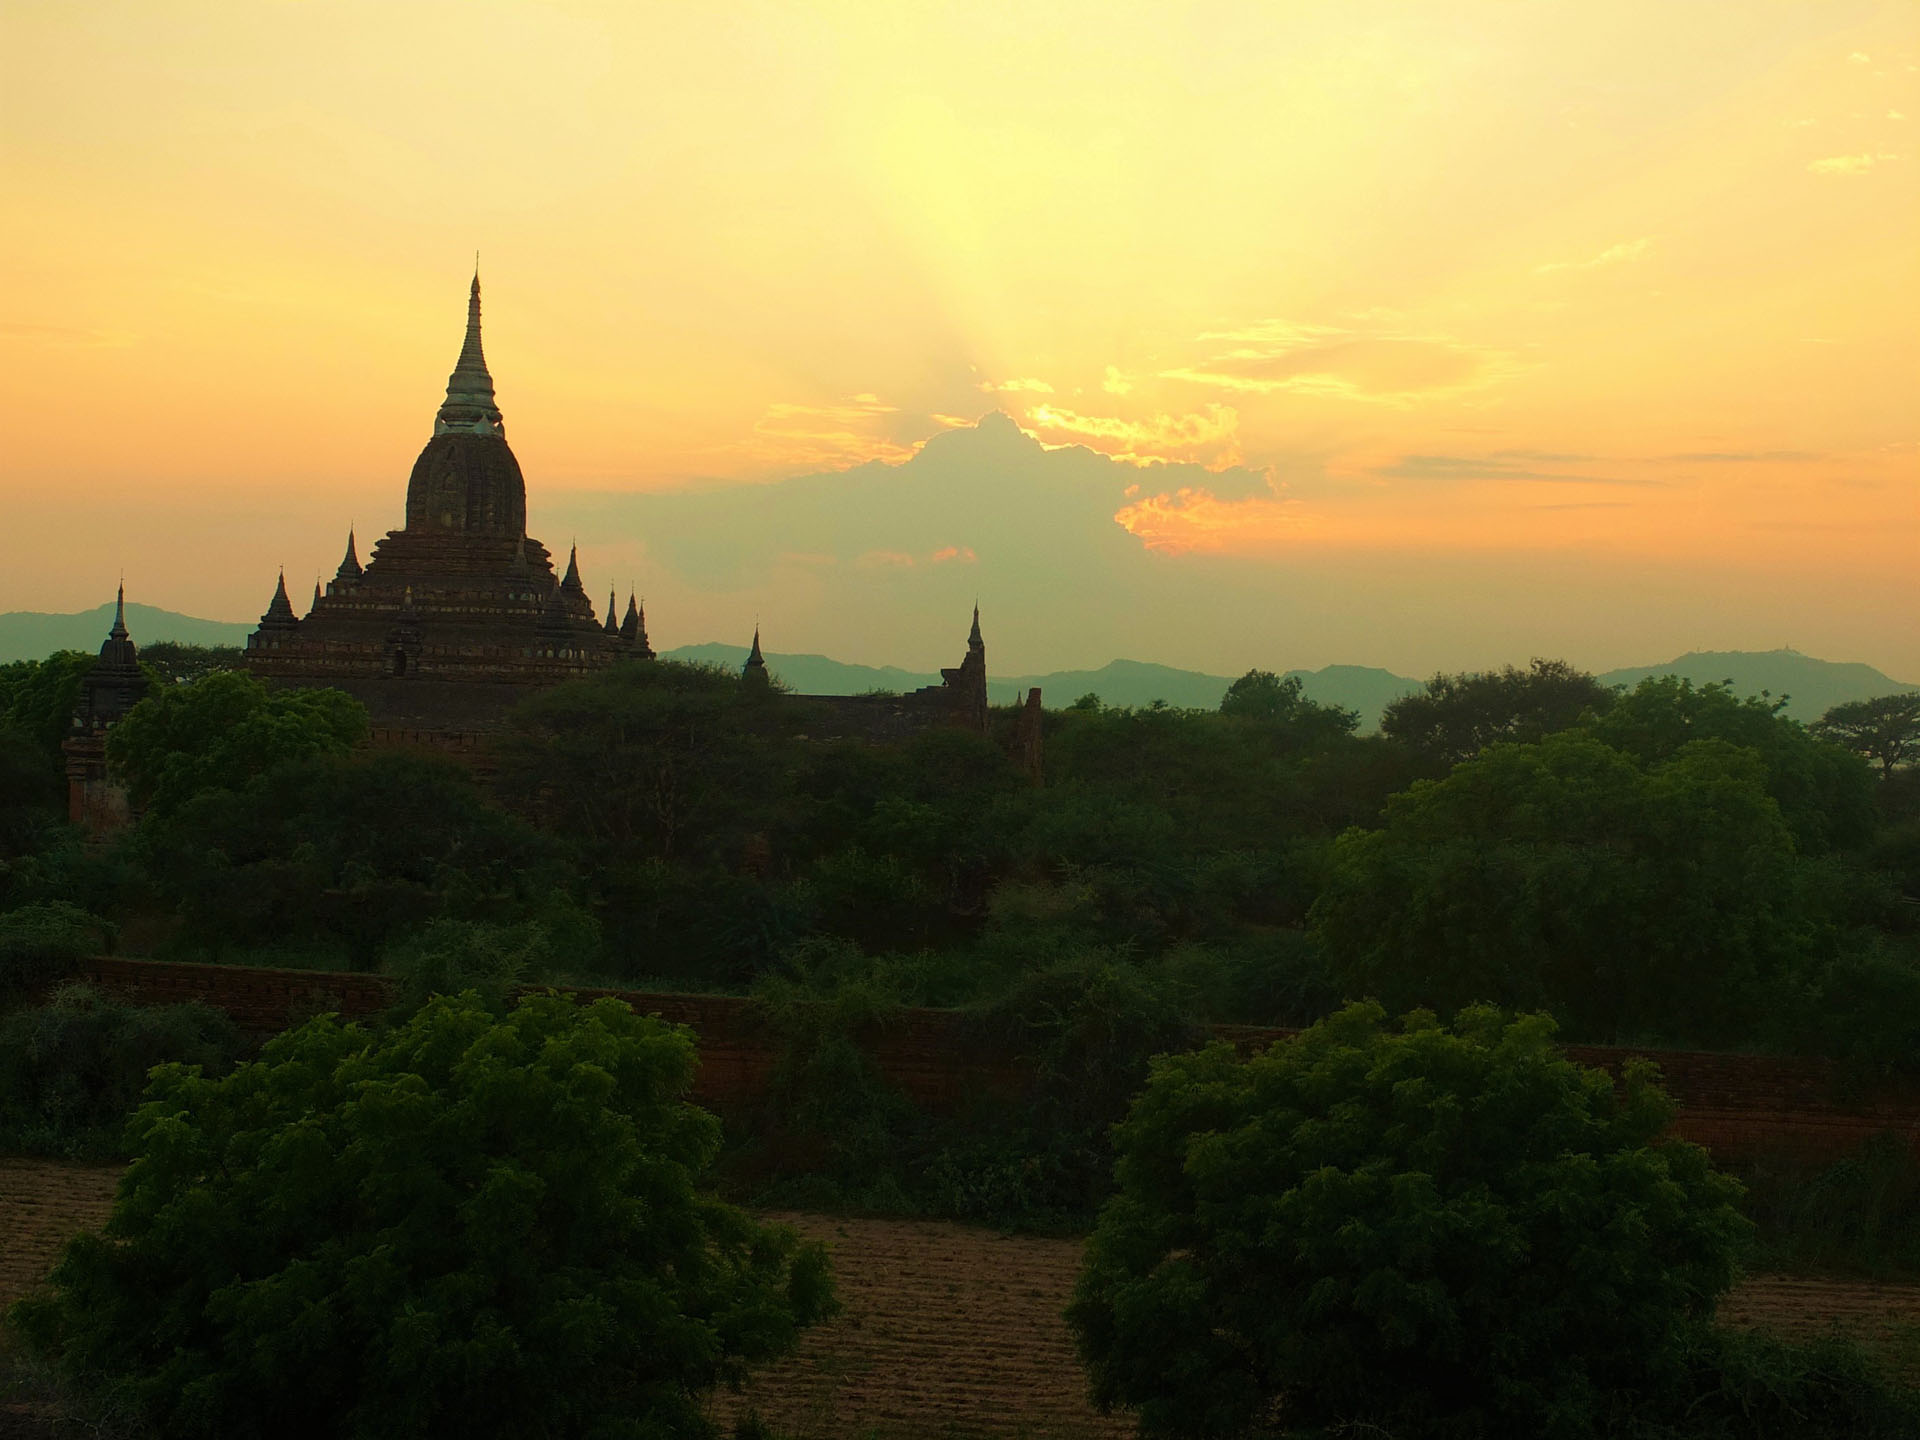 Sunset view from North Guni Temple in Bagan